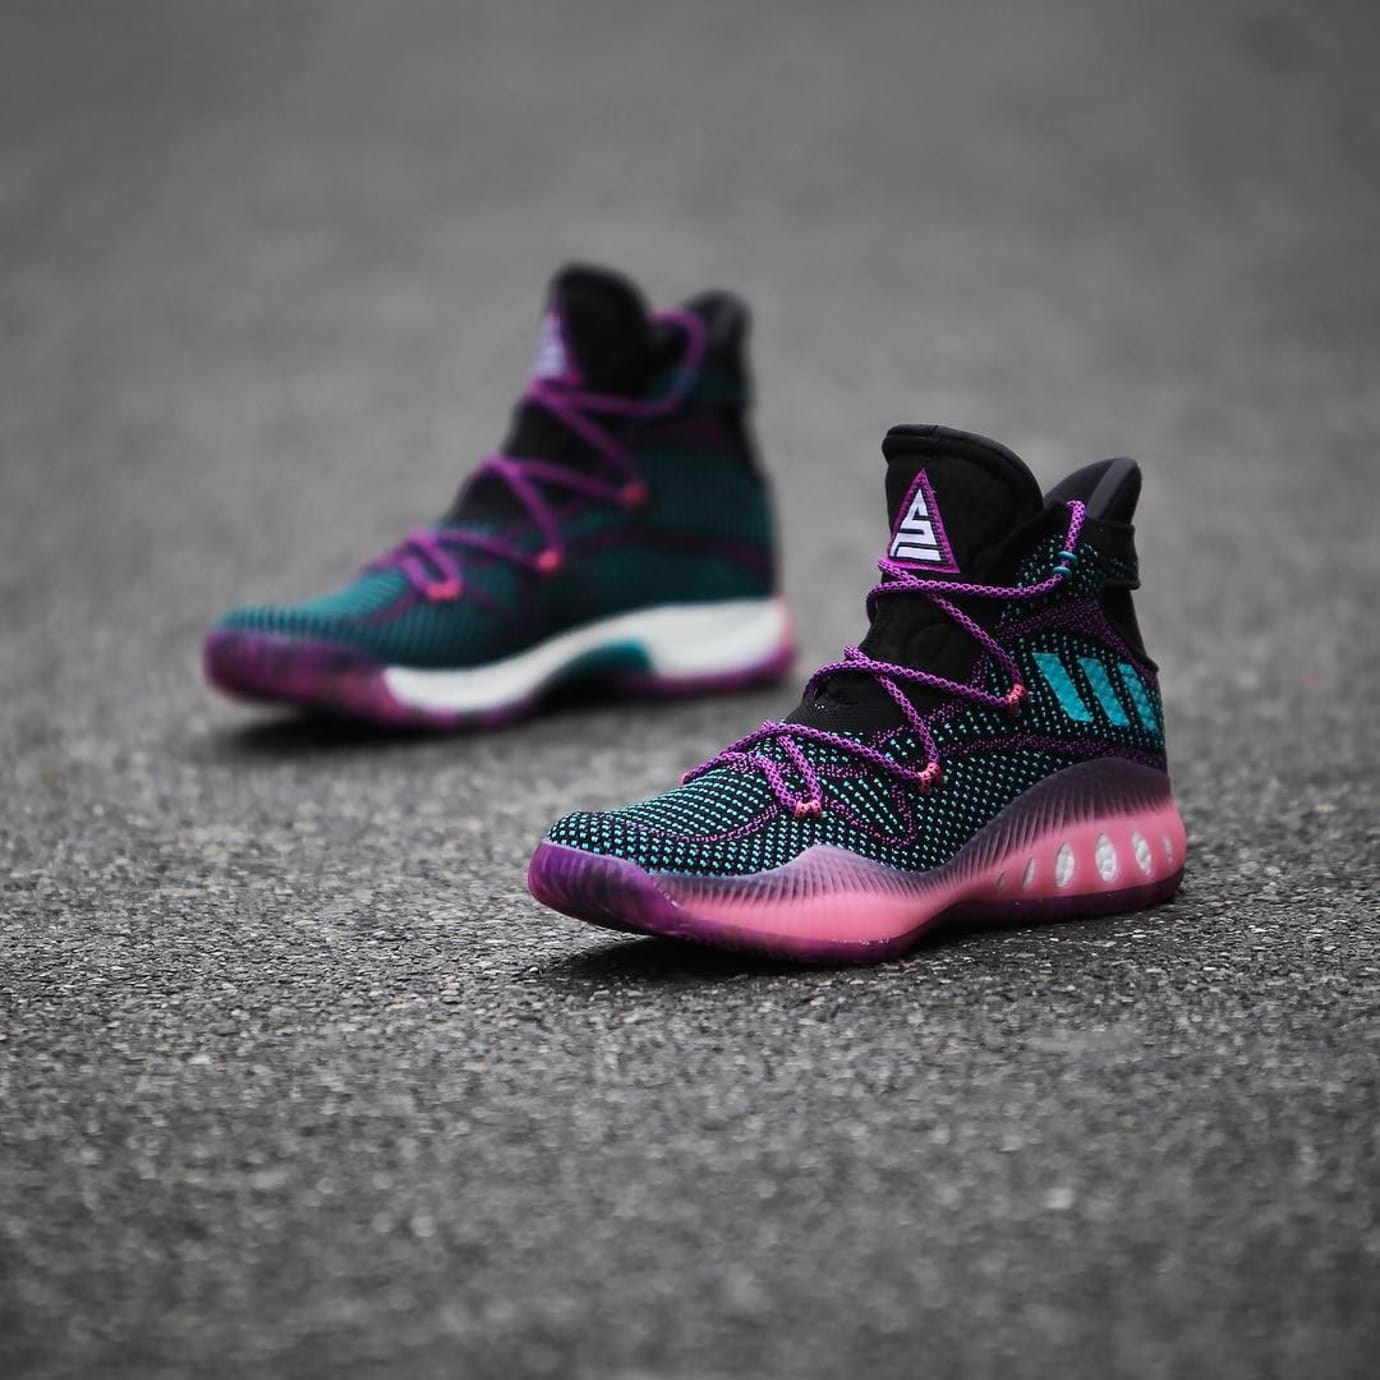 new concept 8002d 9619a Swaggy P Adidas Crazy Explosive Black Pink PE (5) ...